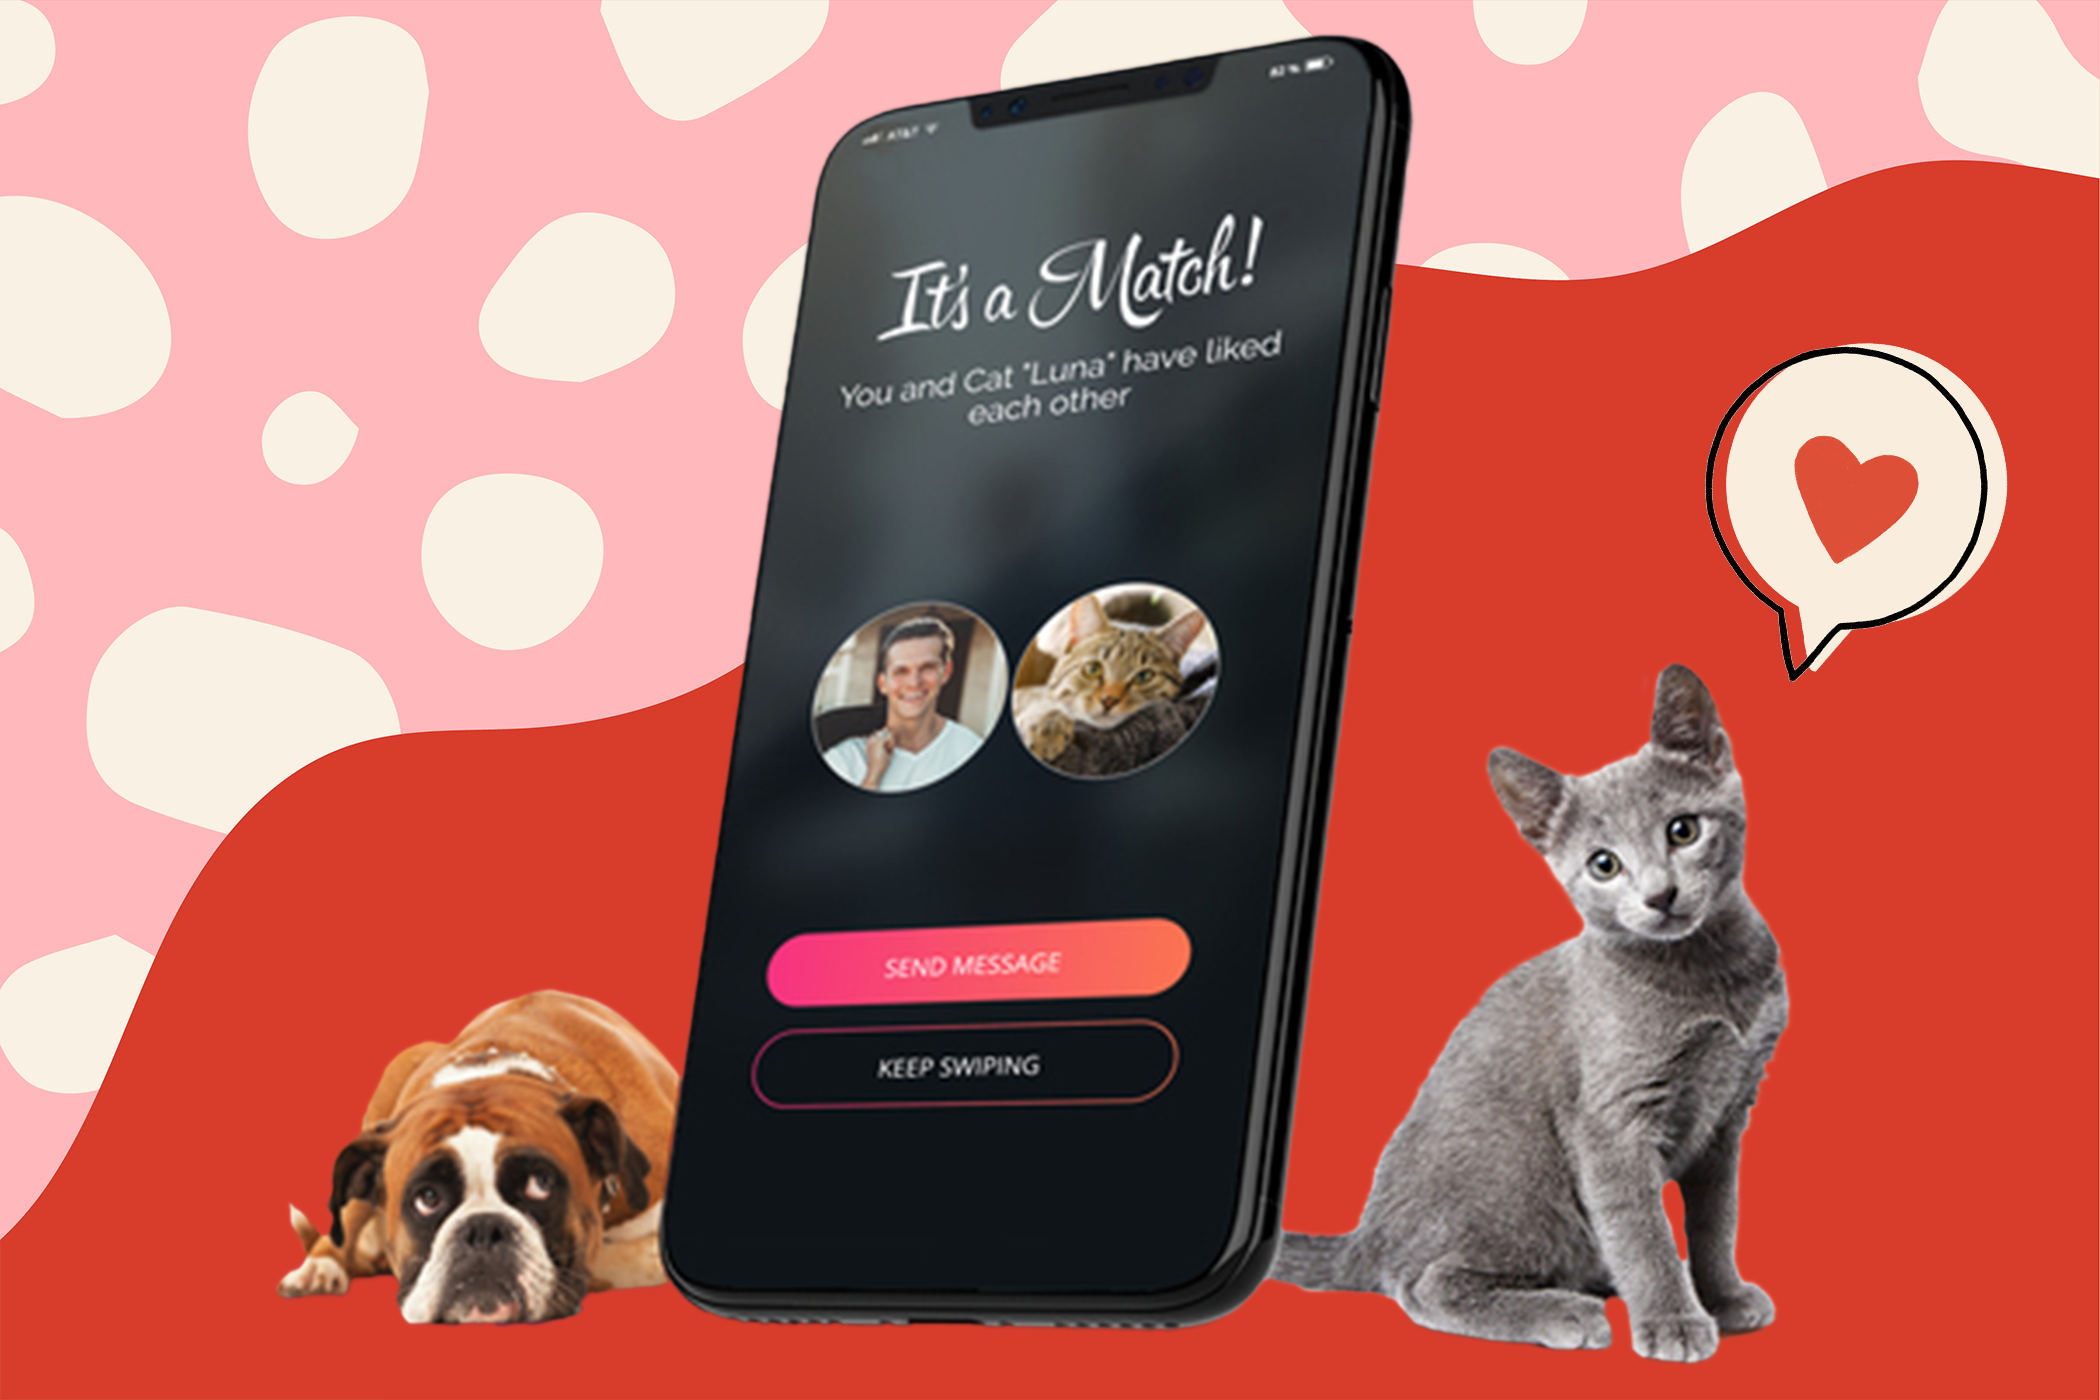 Munich shelter is helping pets find homes through Tinder